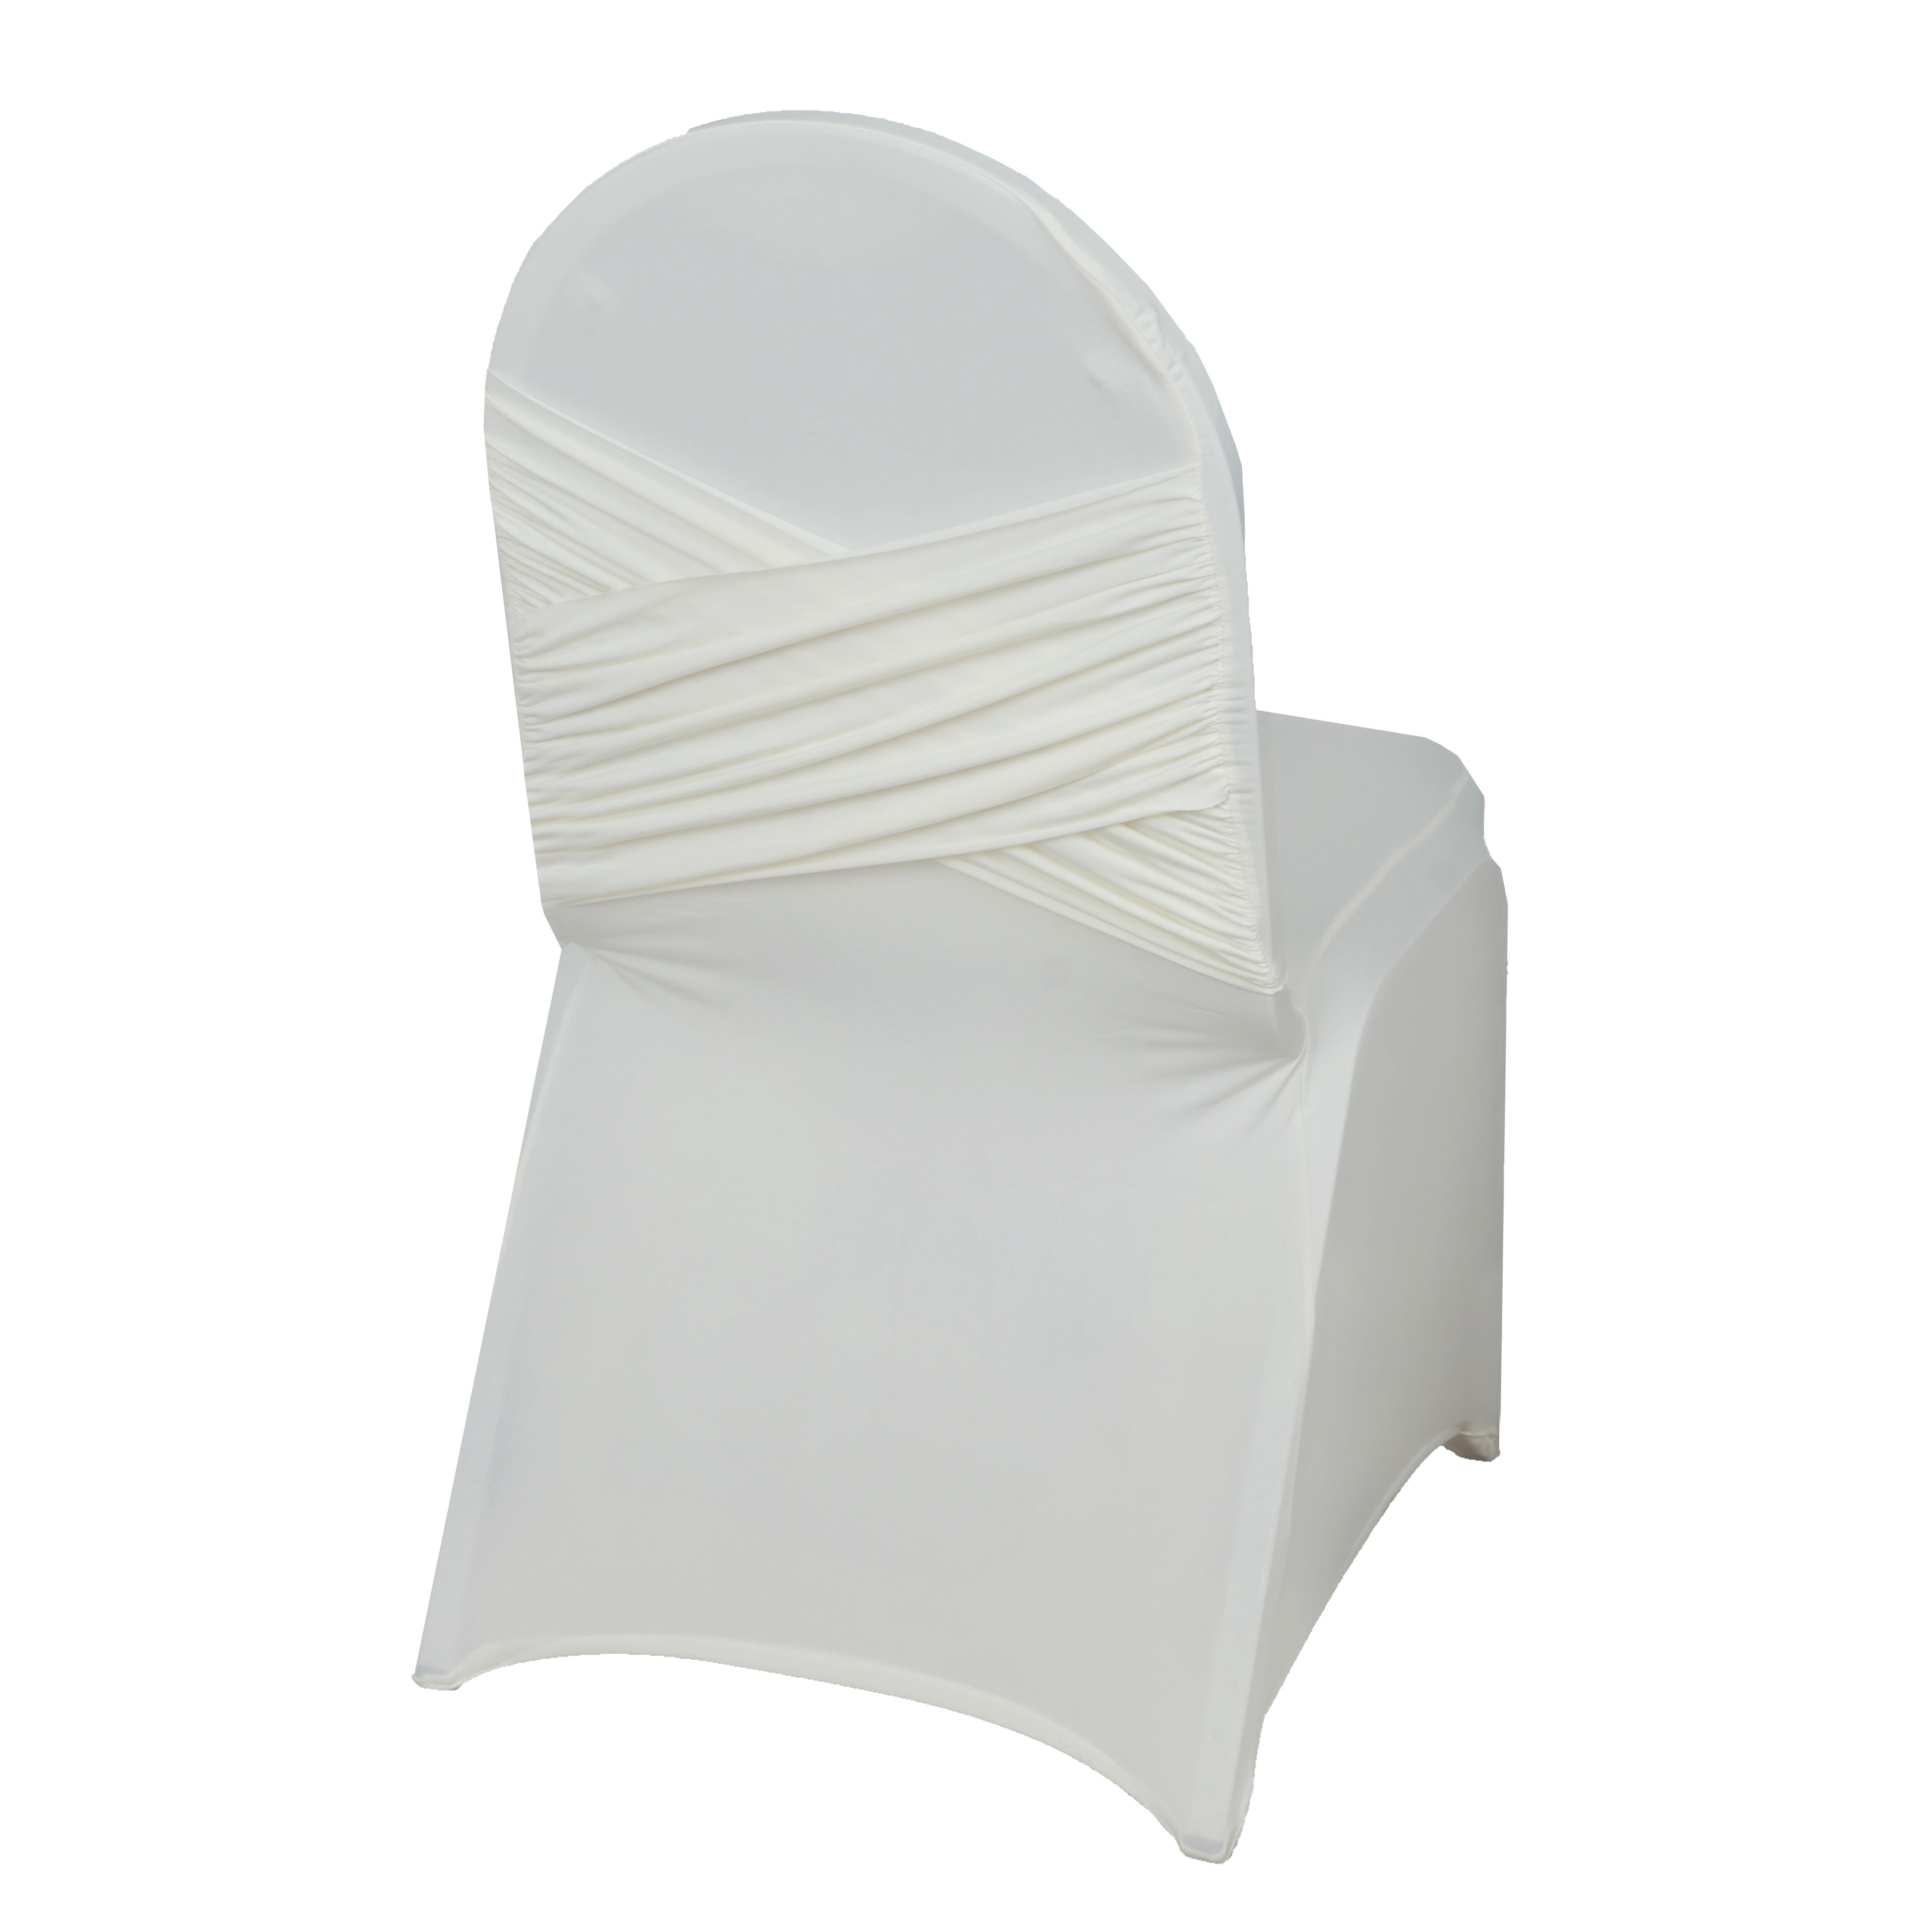 50 pc Spandex Banquet CHAIR COVER Stretchable Crisscross Design